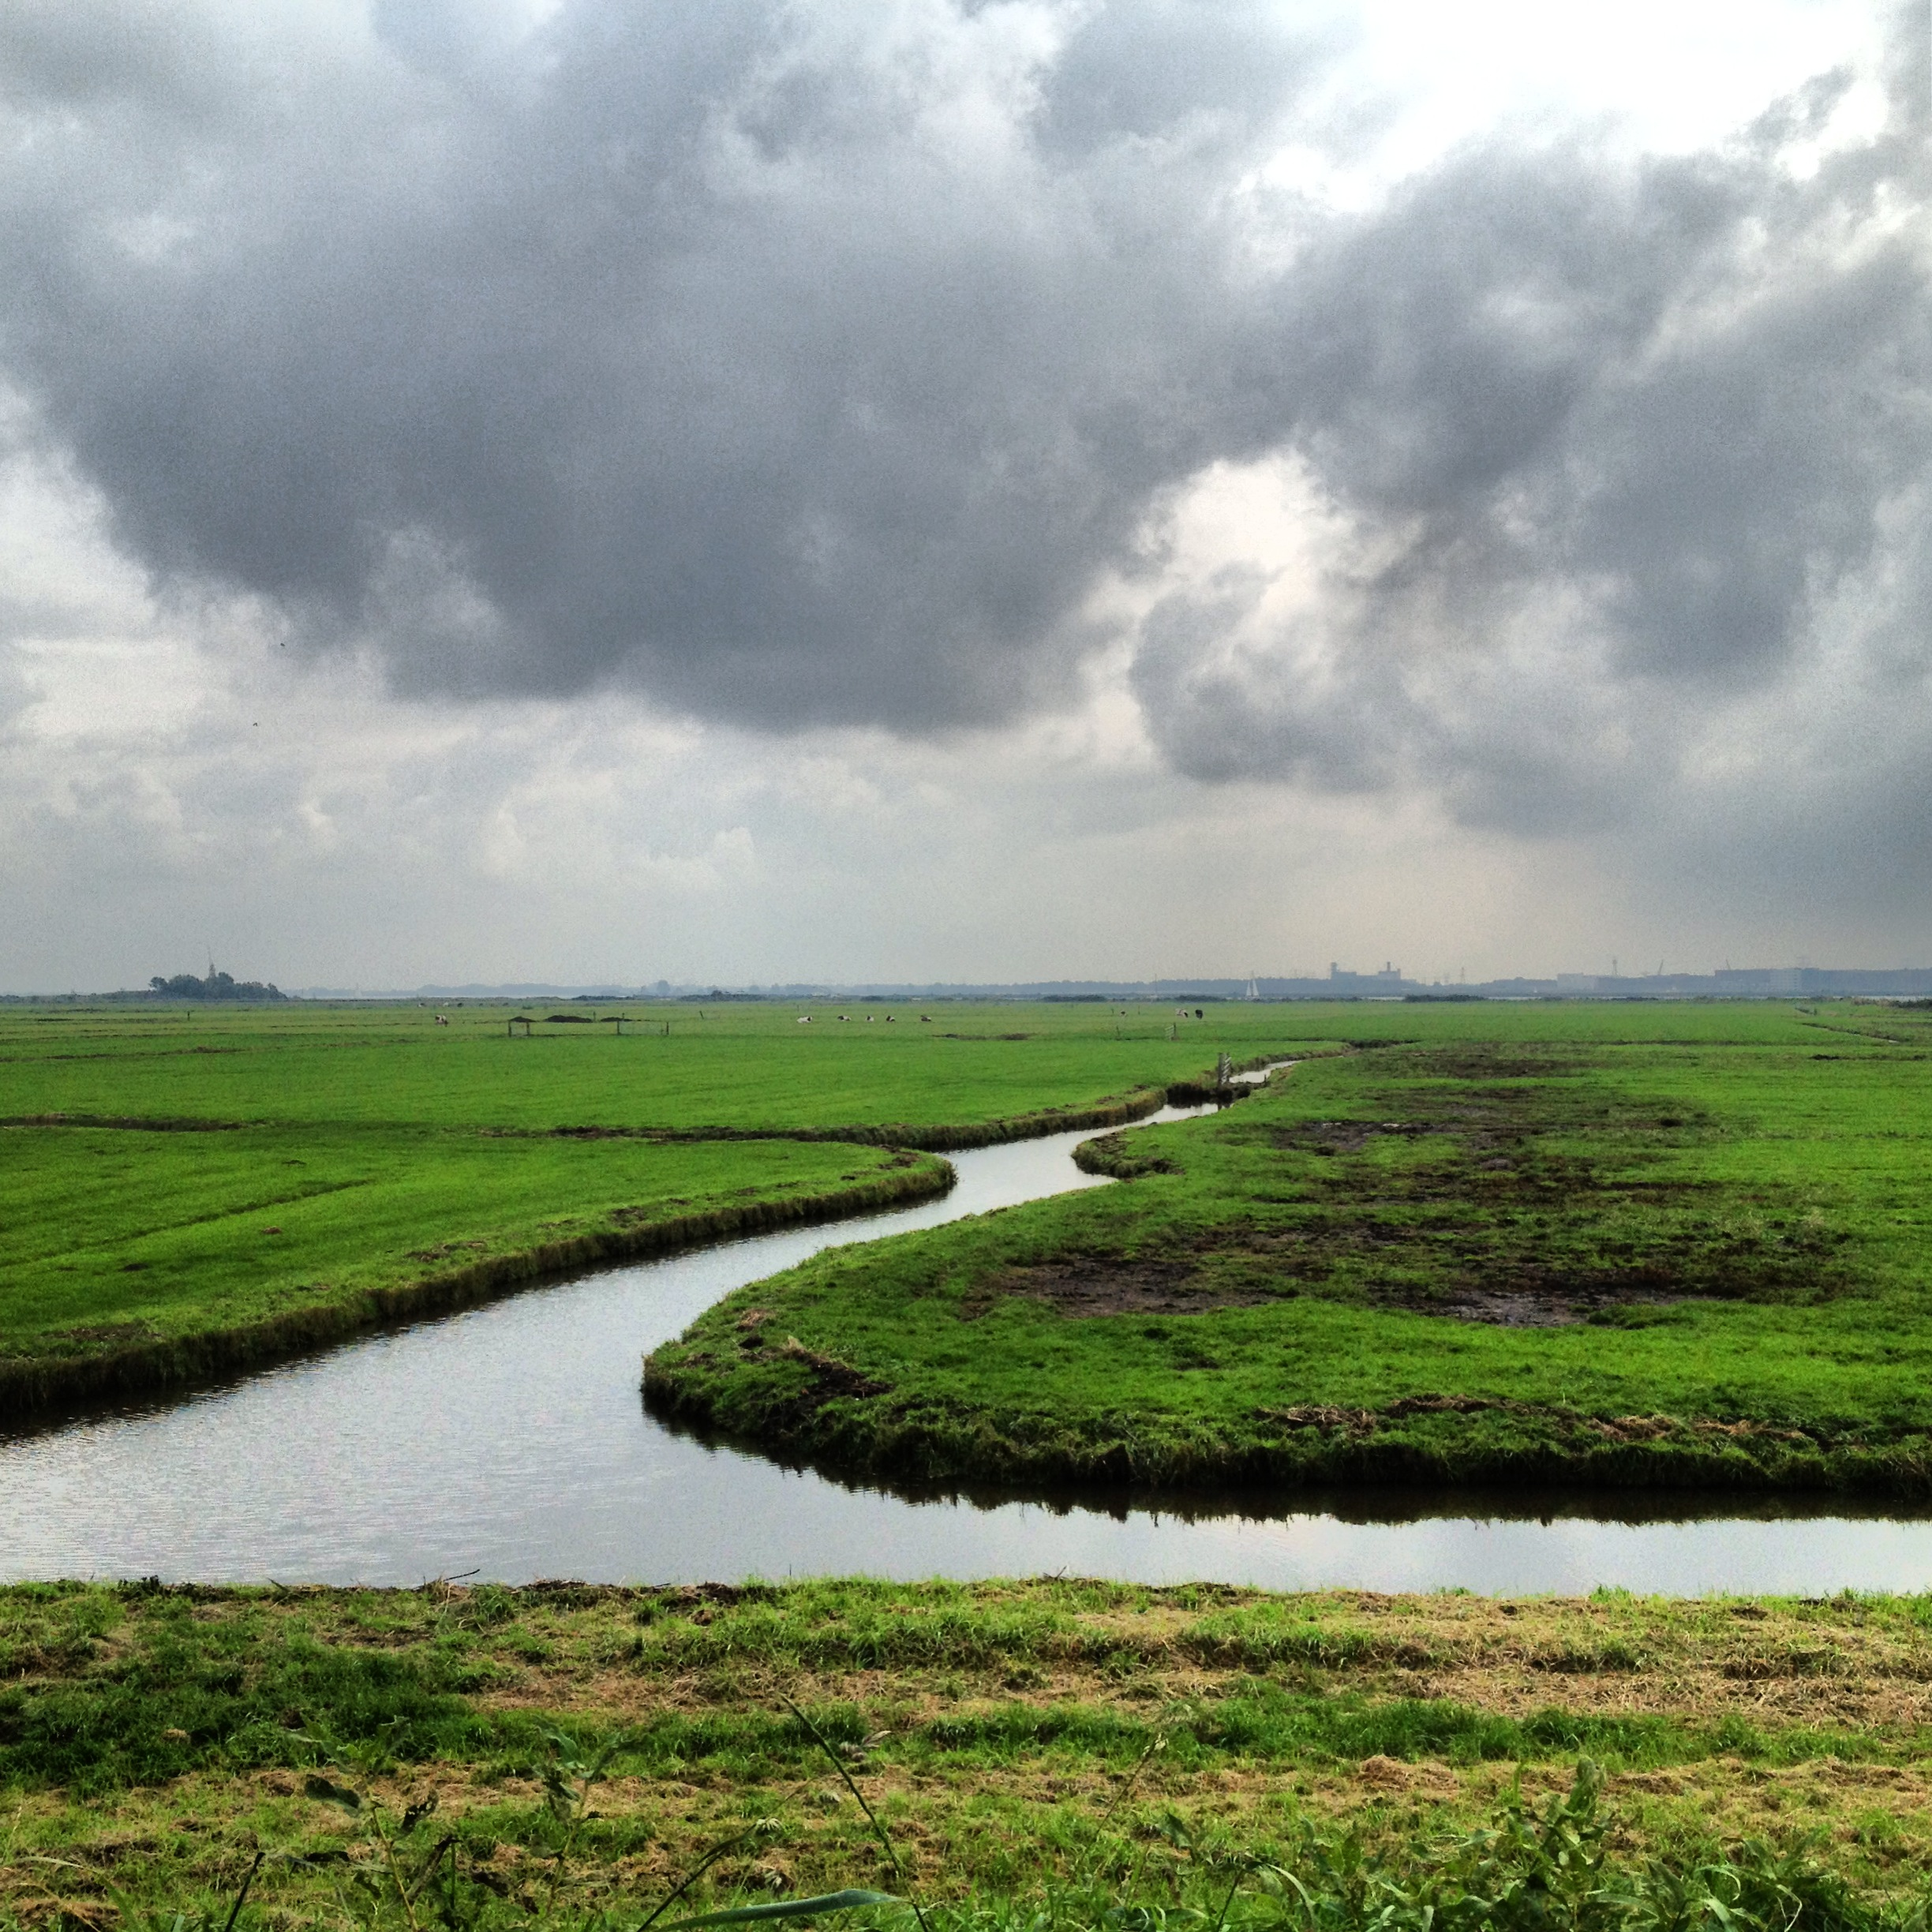 Man made canals that bisect the polders to pump the water for agricultural use: photo by Arlen Stawasz